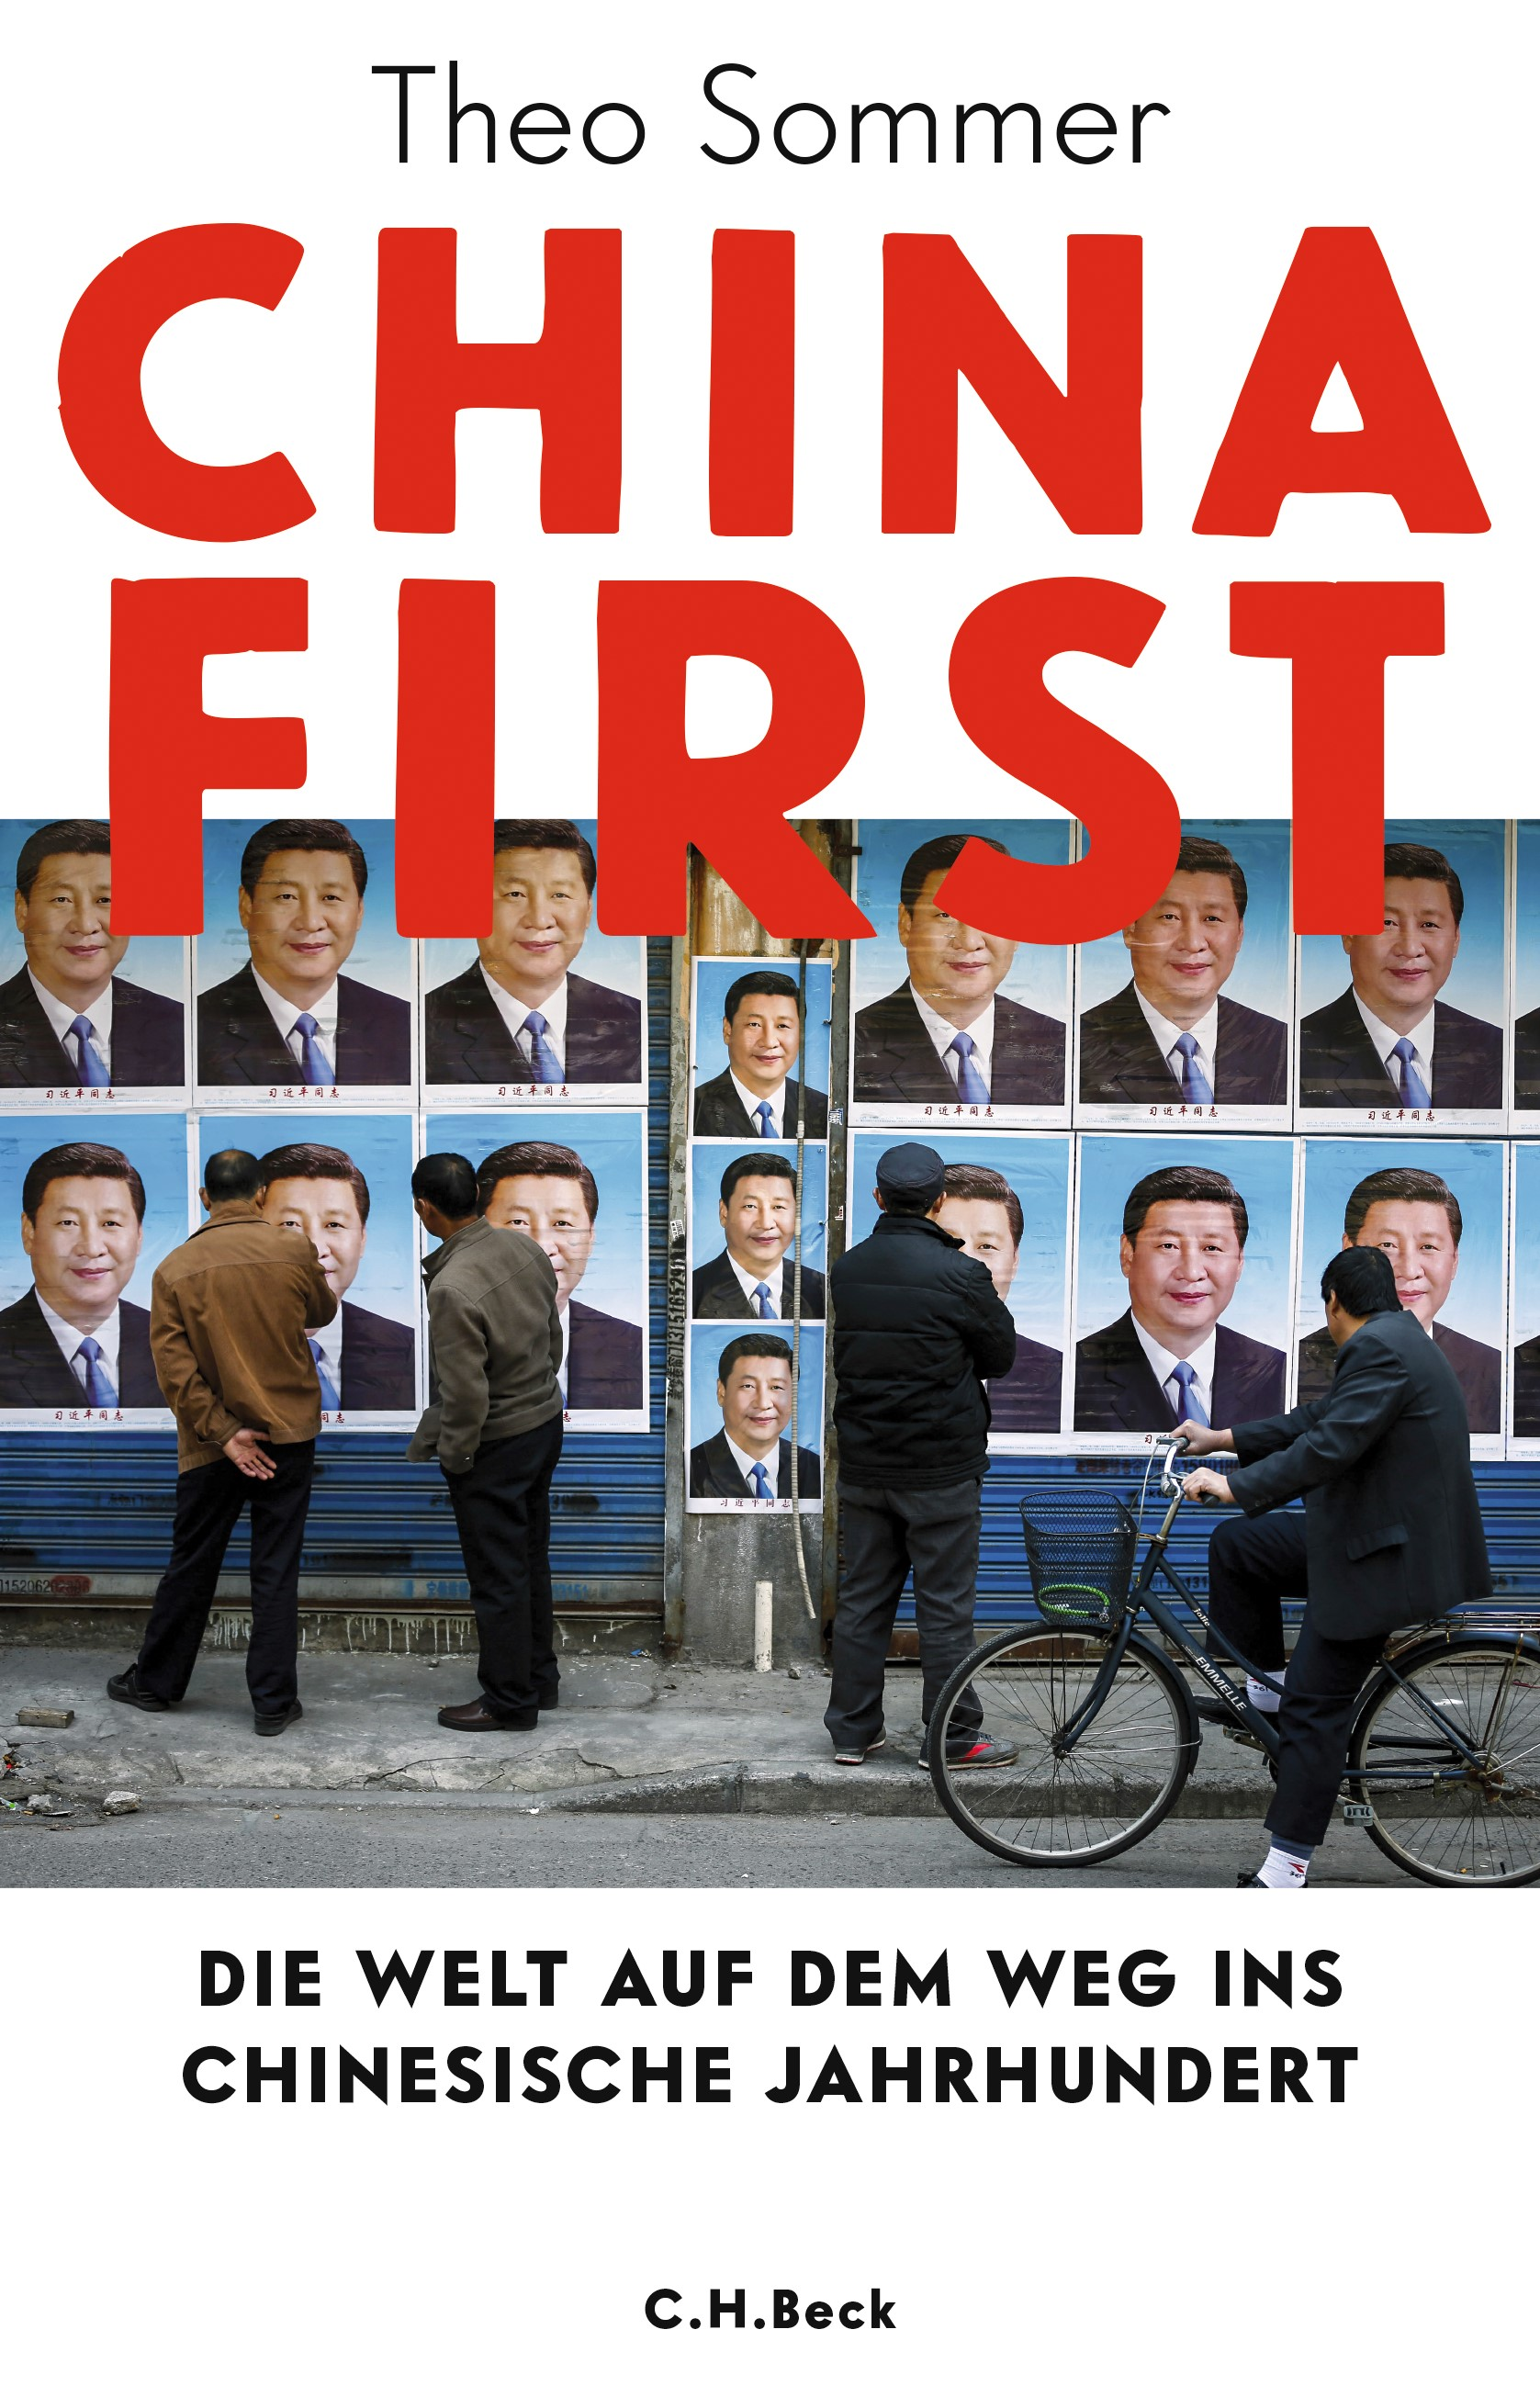 China First | Sommer, Theo, 2019 | Buch (Cover)